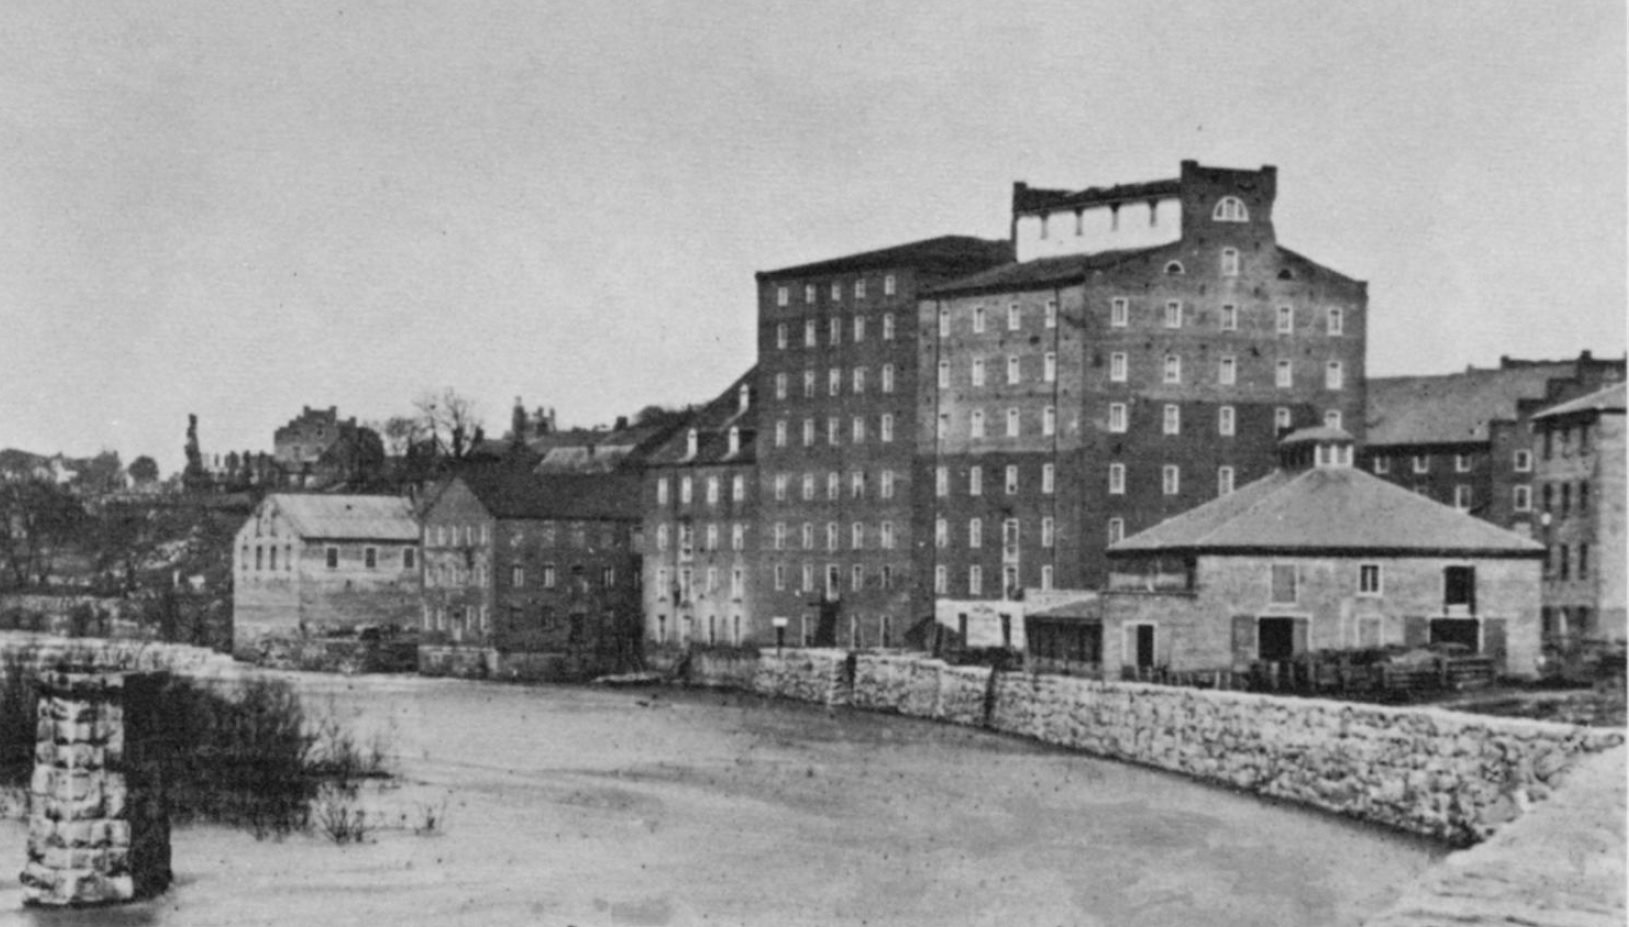 Haxall Mills in 1865. (26)